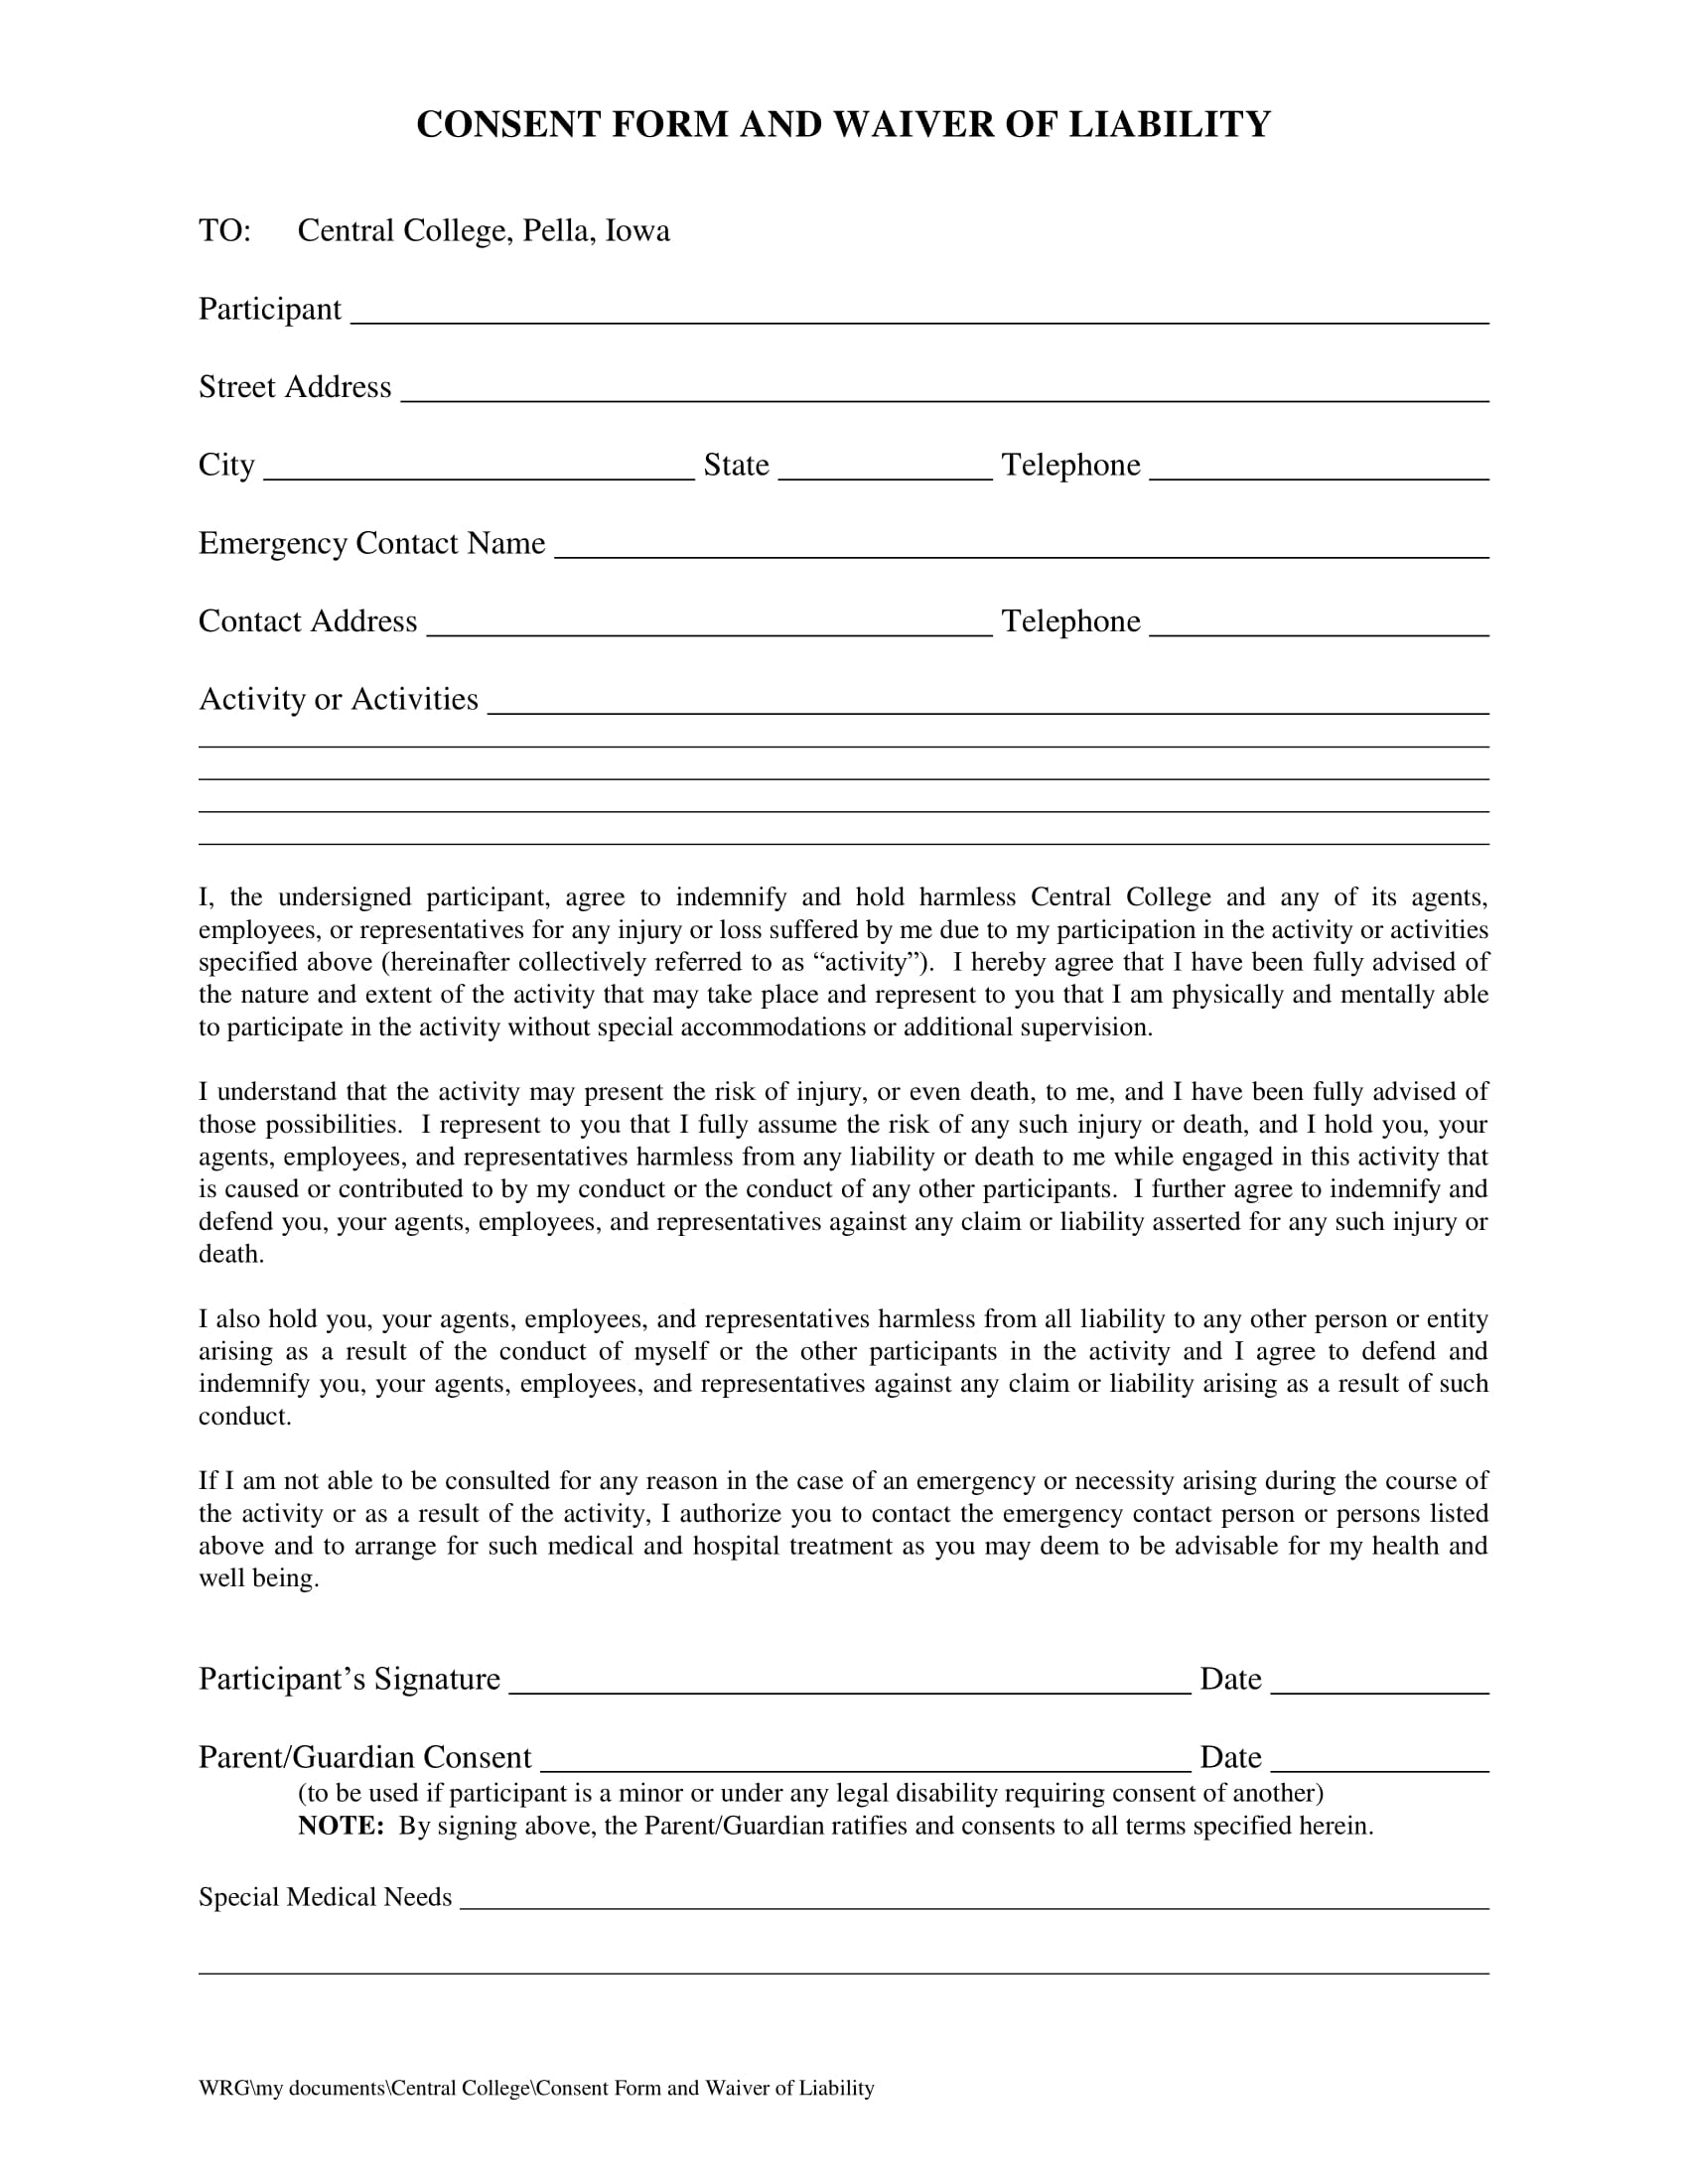 consent form and waiver of liability 1